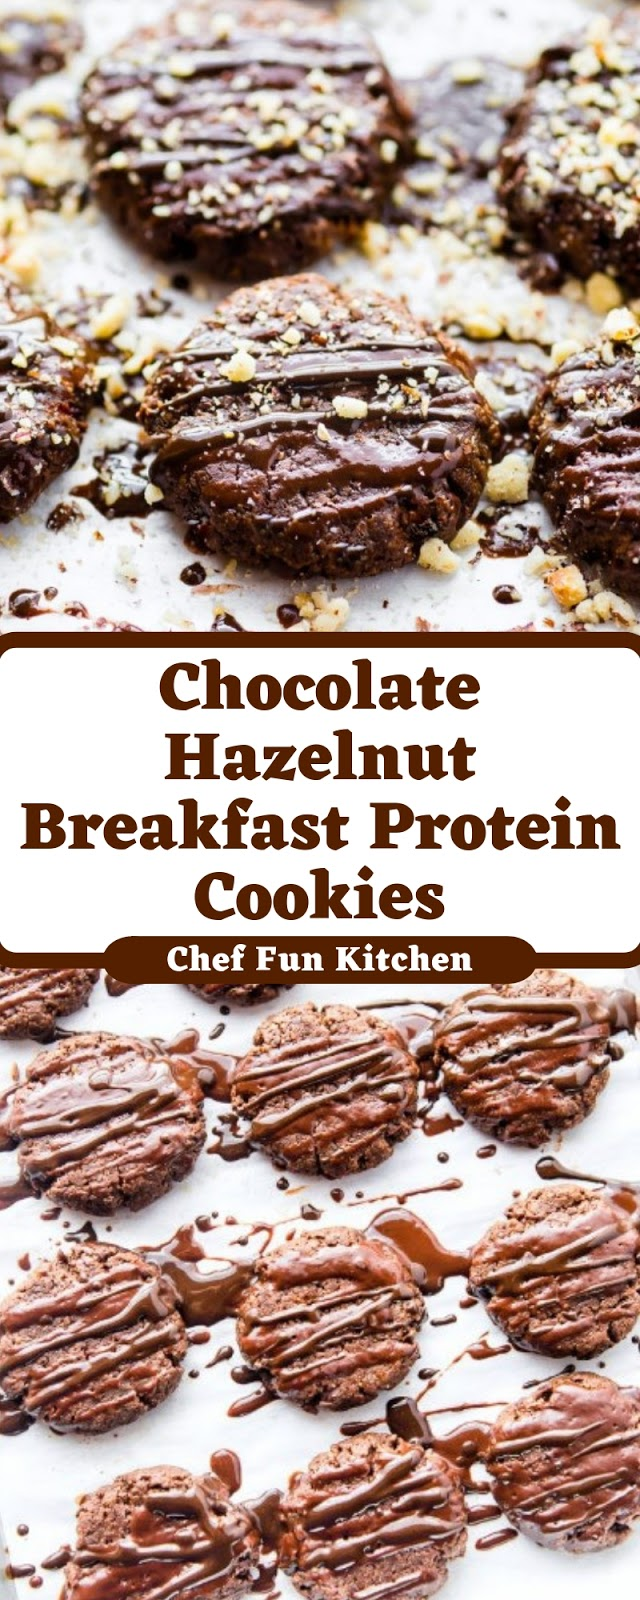 Chocolate Hazelnut Breakfast Protein Cookies